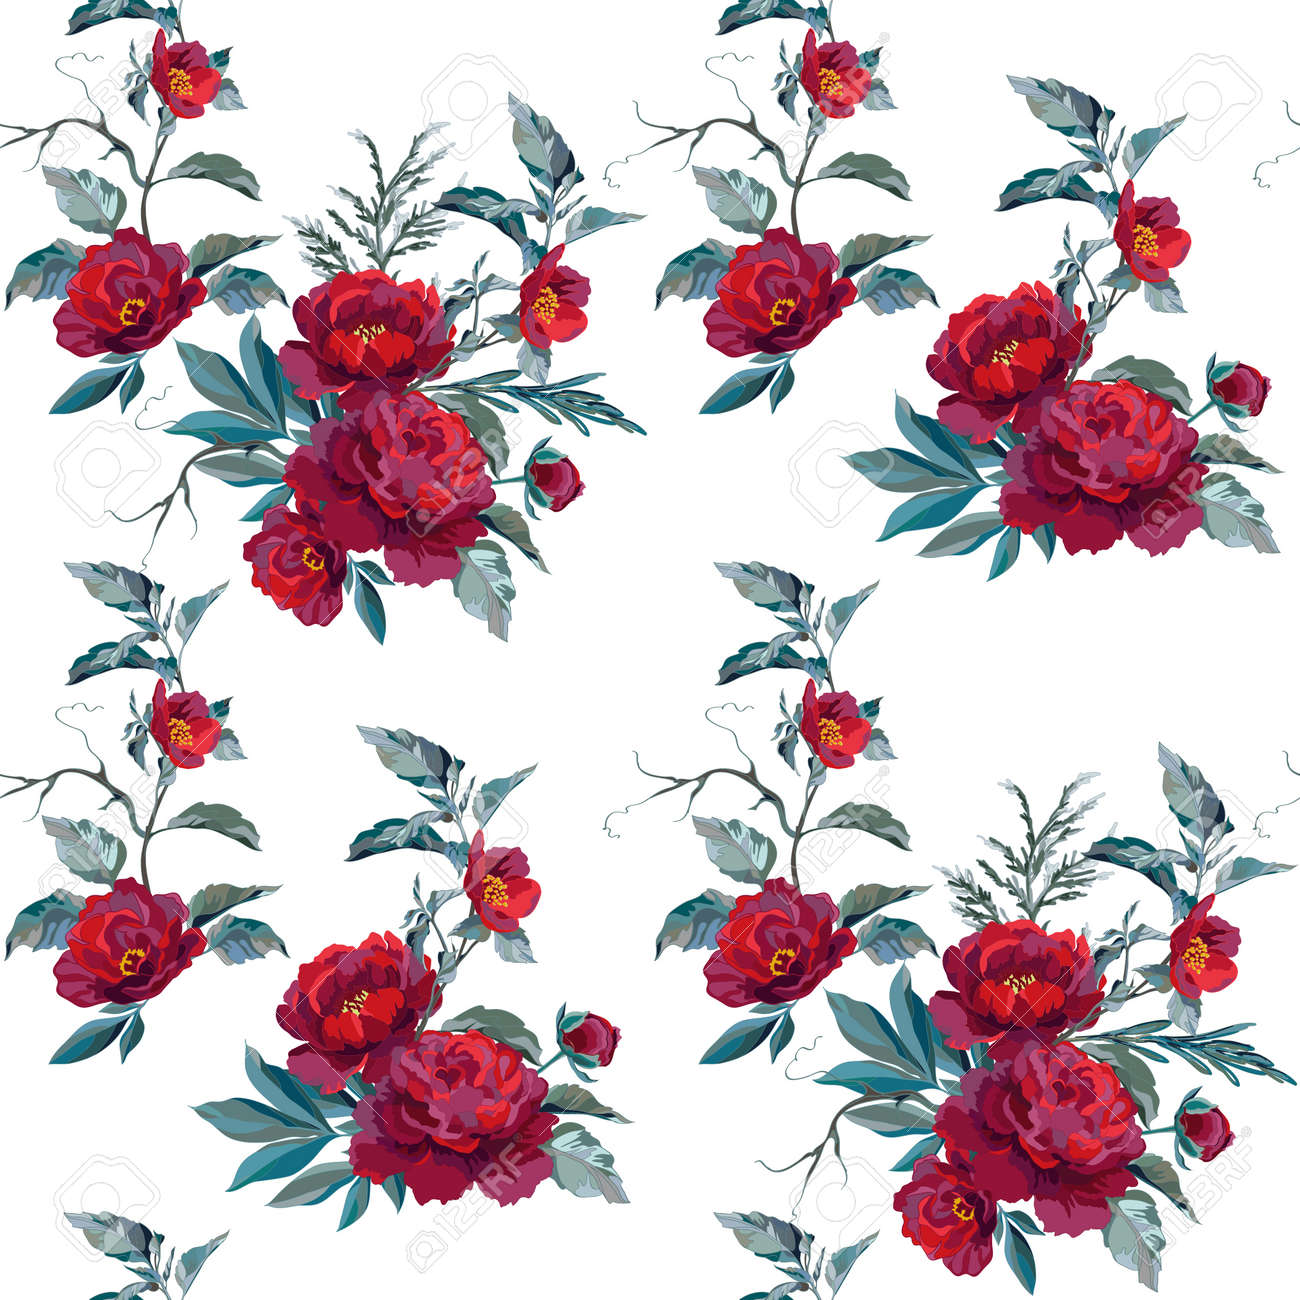 Vector material swatch with dark peonies, blue leaves and decorative branches. Vector illustration. - 167360895